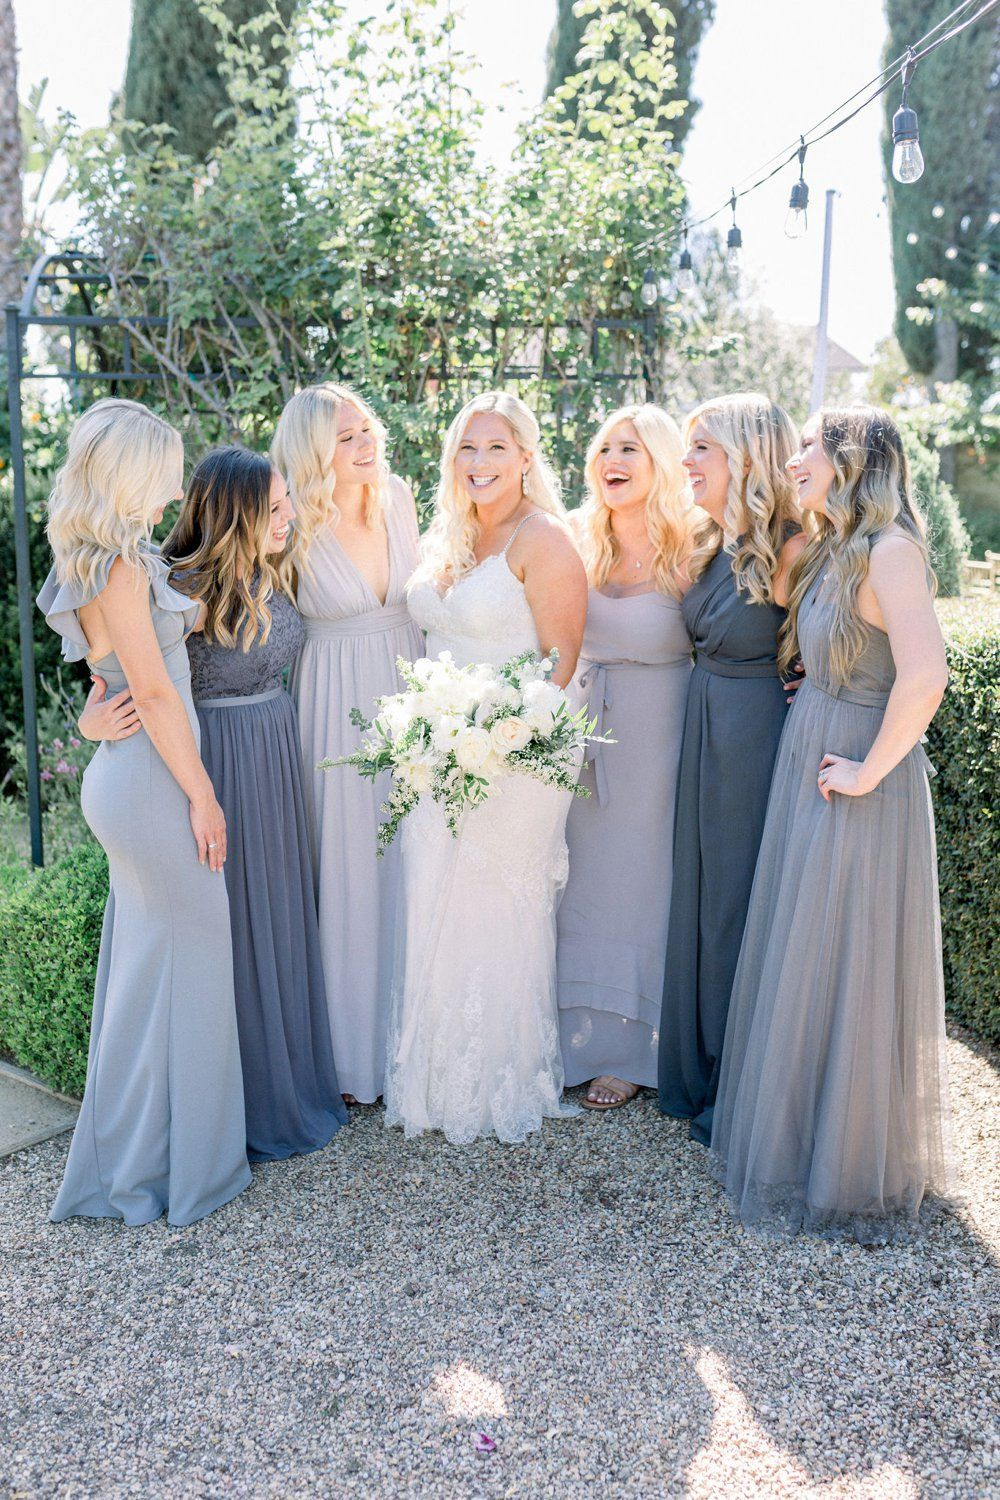 Mismatched Gray Bridesmaids Dresses From The Green And Grey Garden Weddin Blue Bridesmaid Dresses Wedding Bridesmaid Dresses Mismatched Grey Bridesmaid Dresses [ 1500 x 1000 Pixel ]